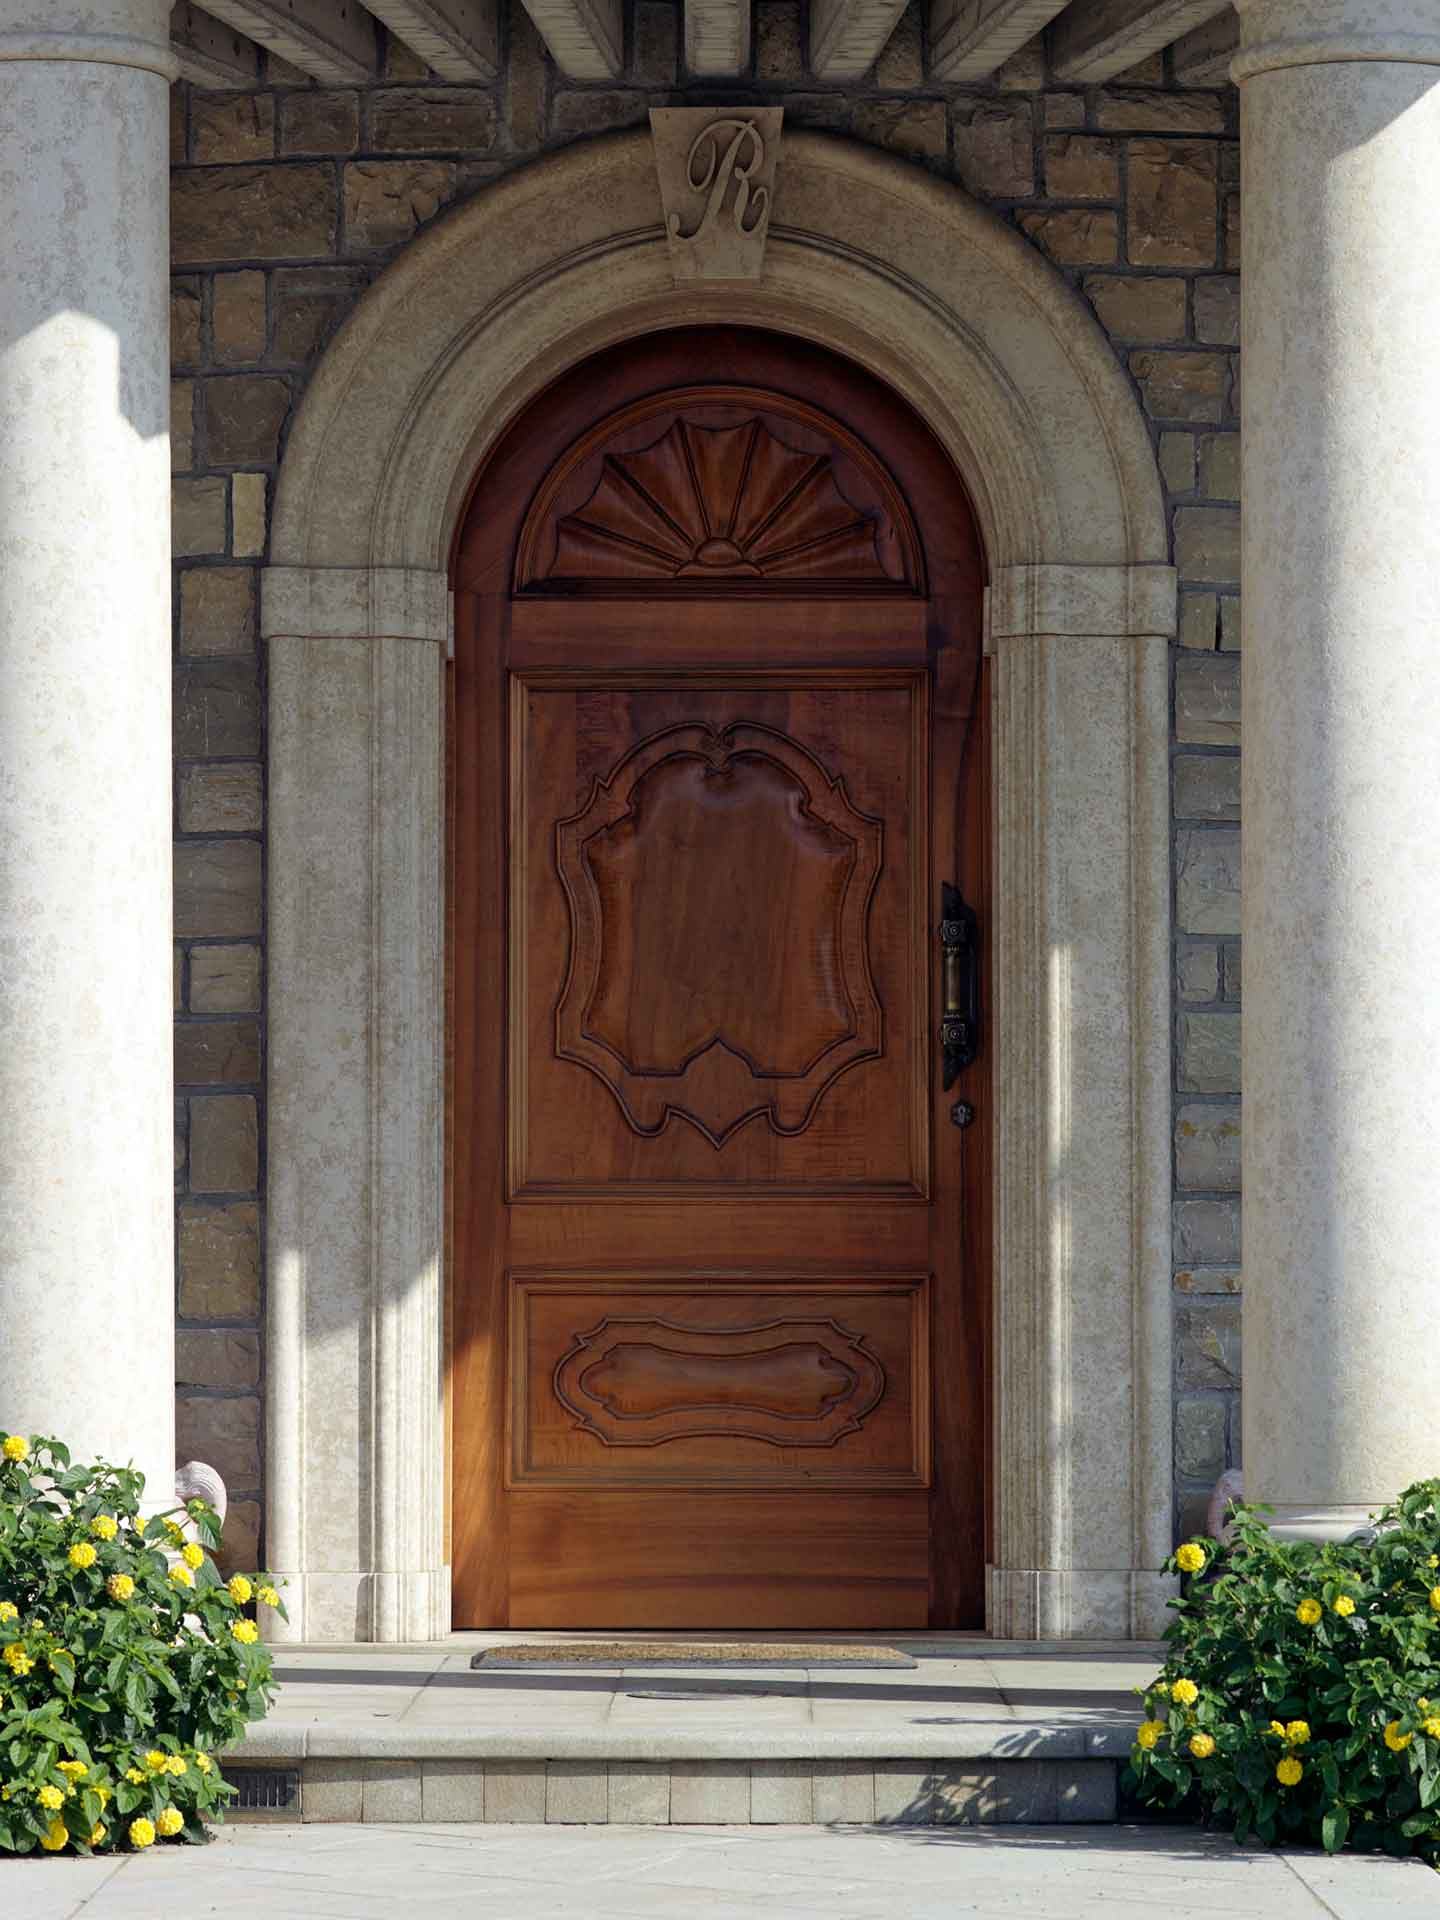 Entrance doors, image c